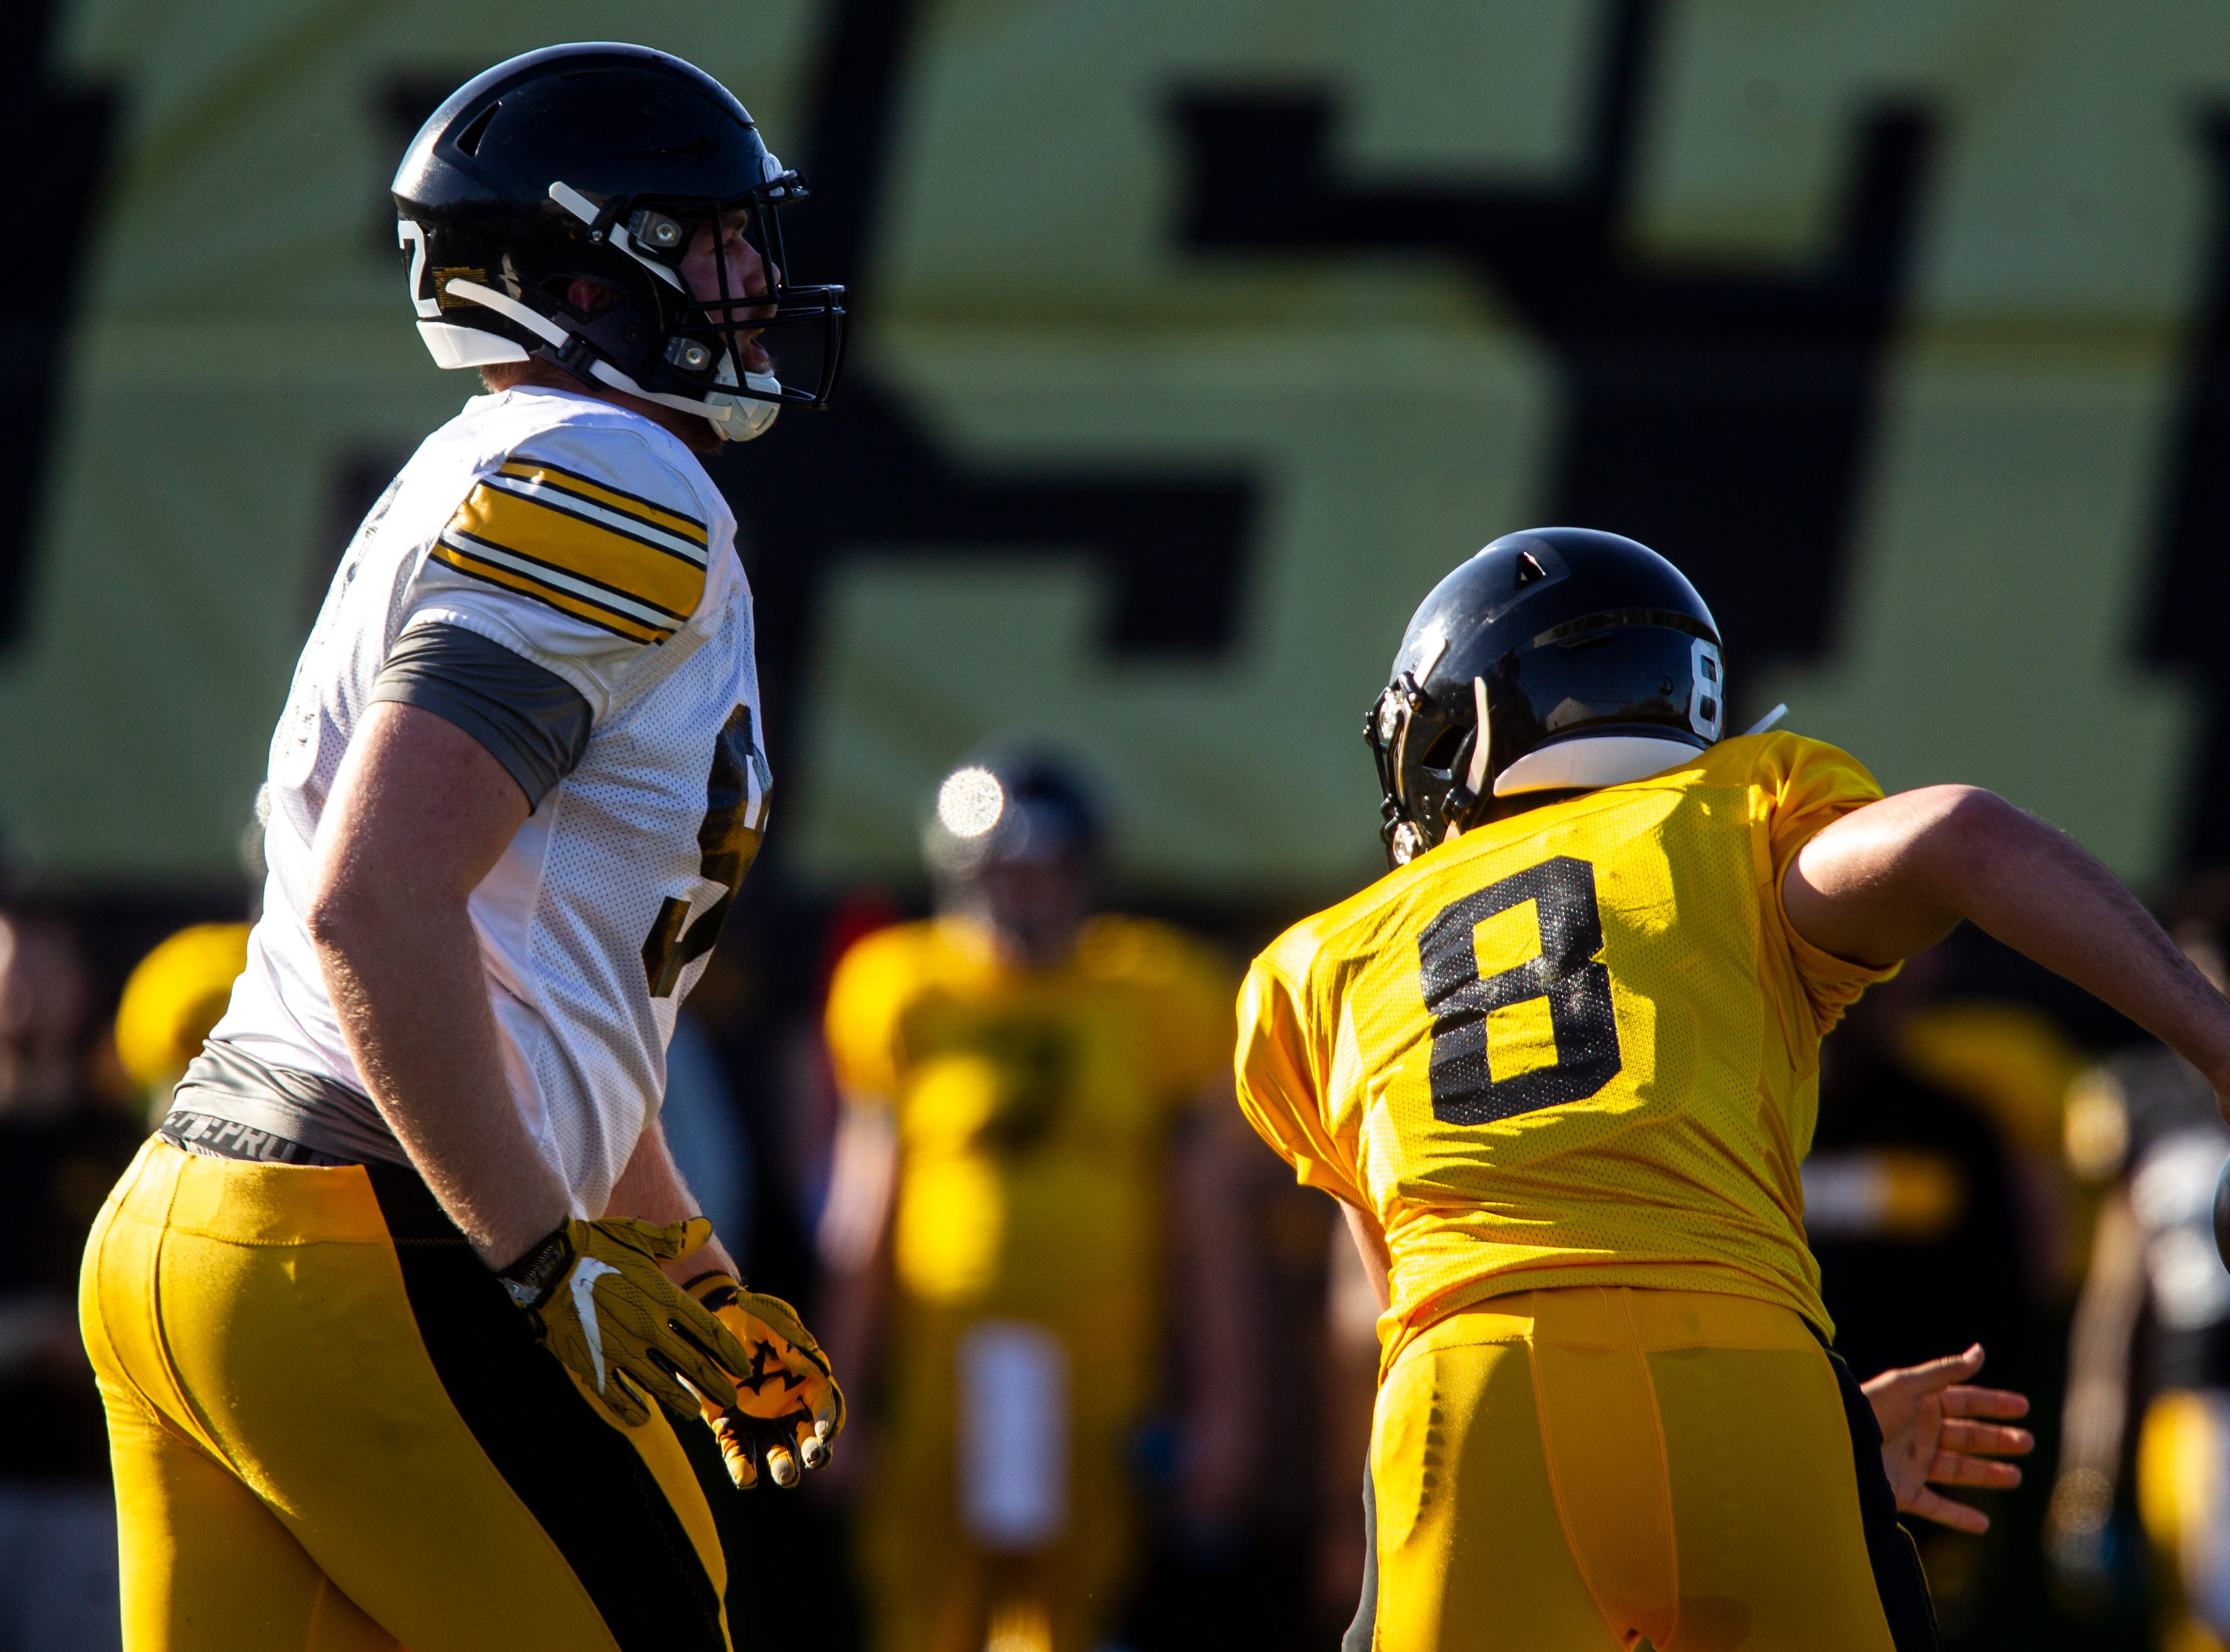 Iowa defensive lineman John Waggoner (92) breaks through the line towards quarterback Alex Padilla (8) during the final spring football practice, Friday, April 26, 2019, at the University of Iowa outdoor practice facility in Iowa City, Iowa.